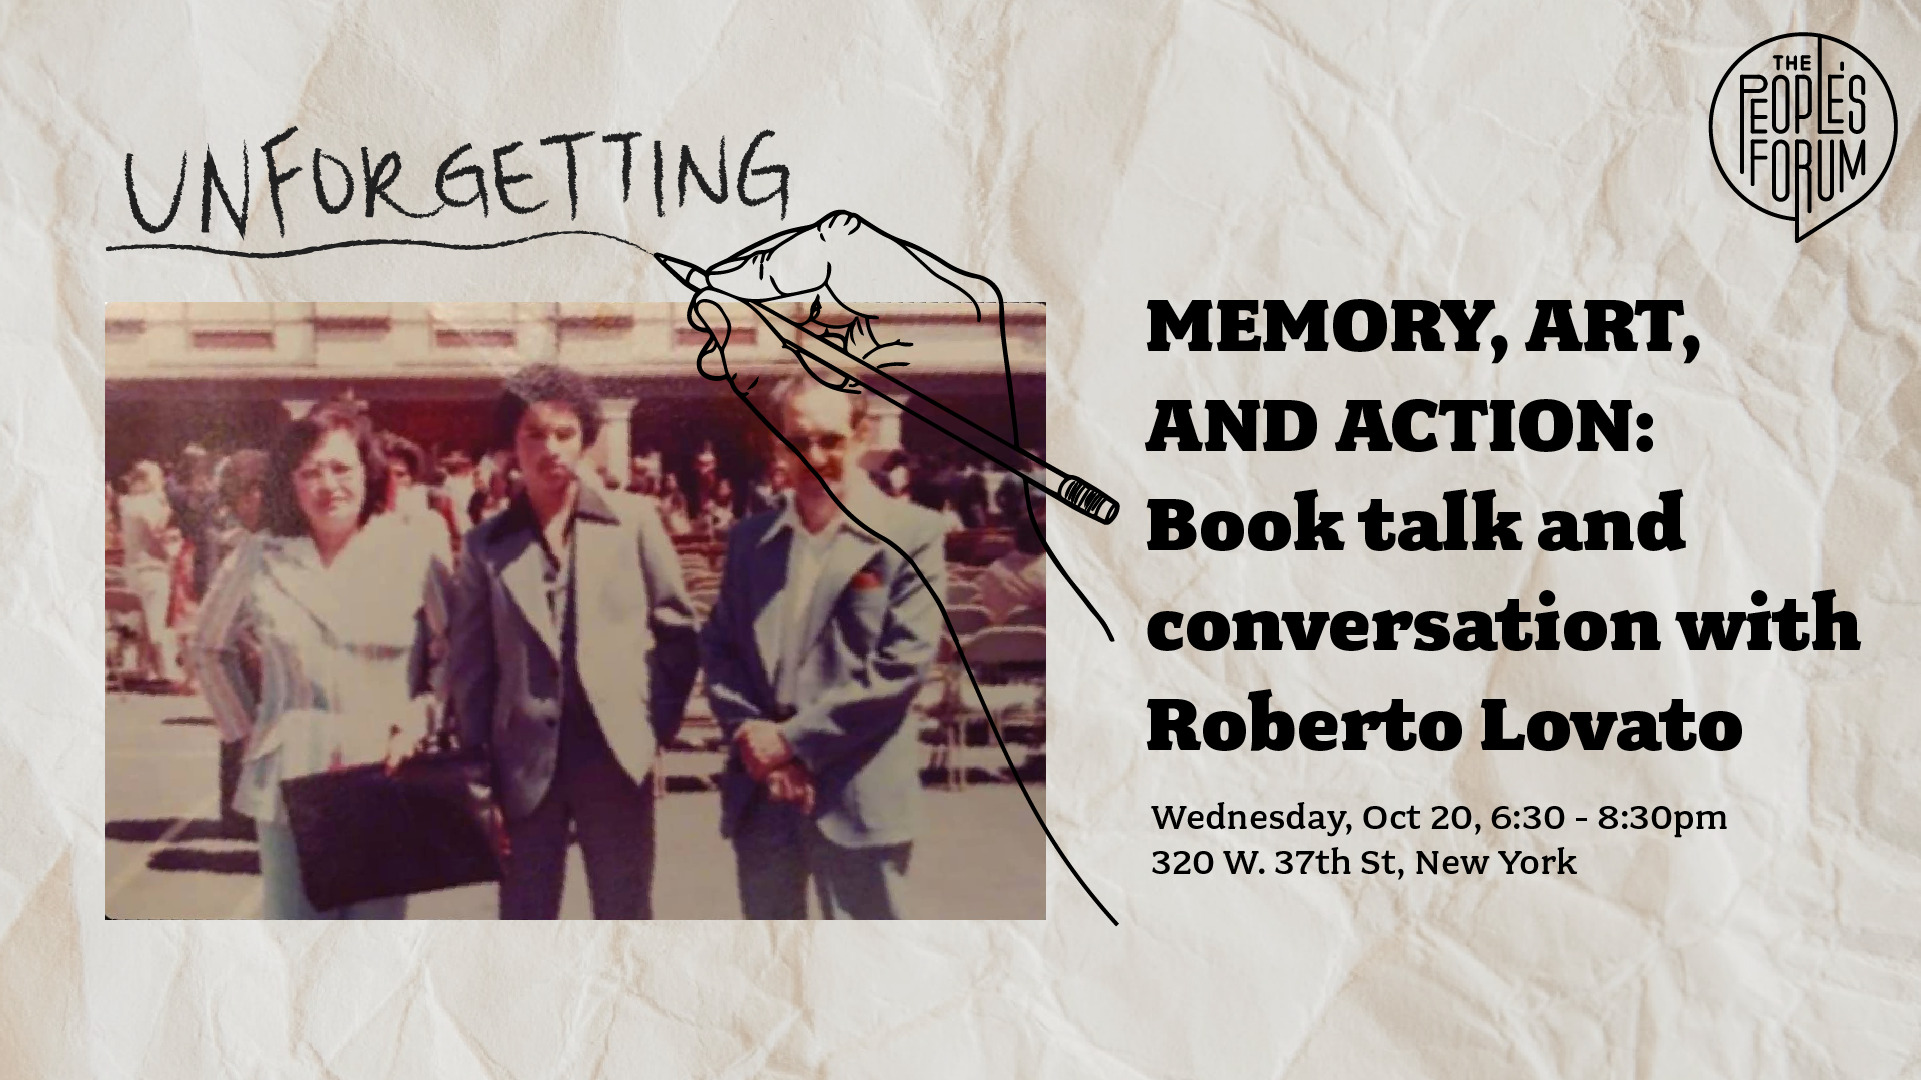 Unforgetting book talk and conversation with Roberto Lovato, and a picture of the cover